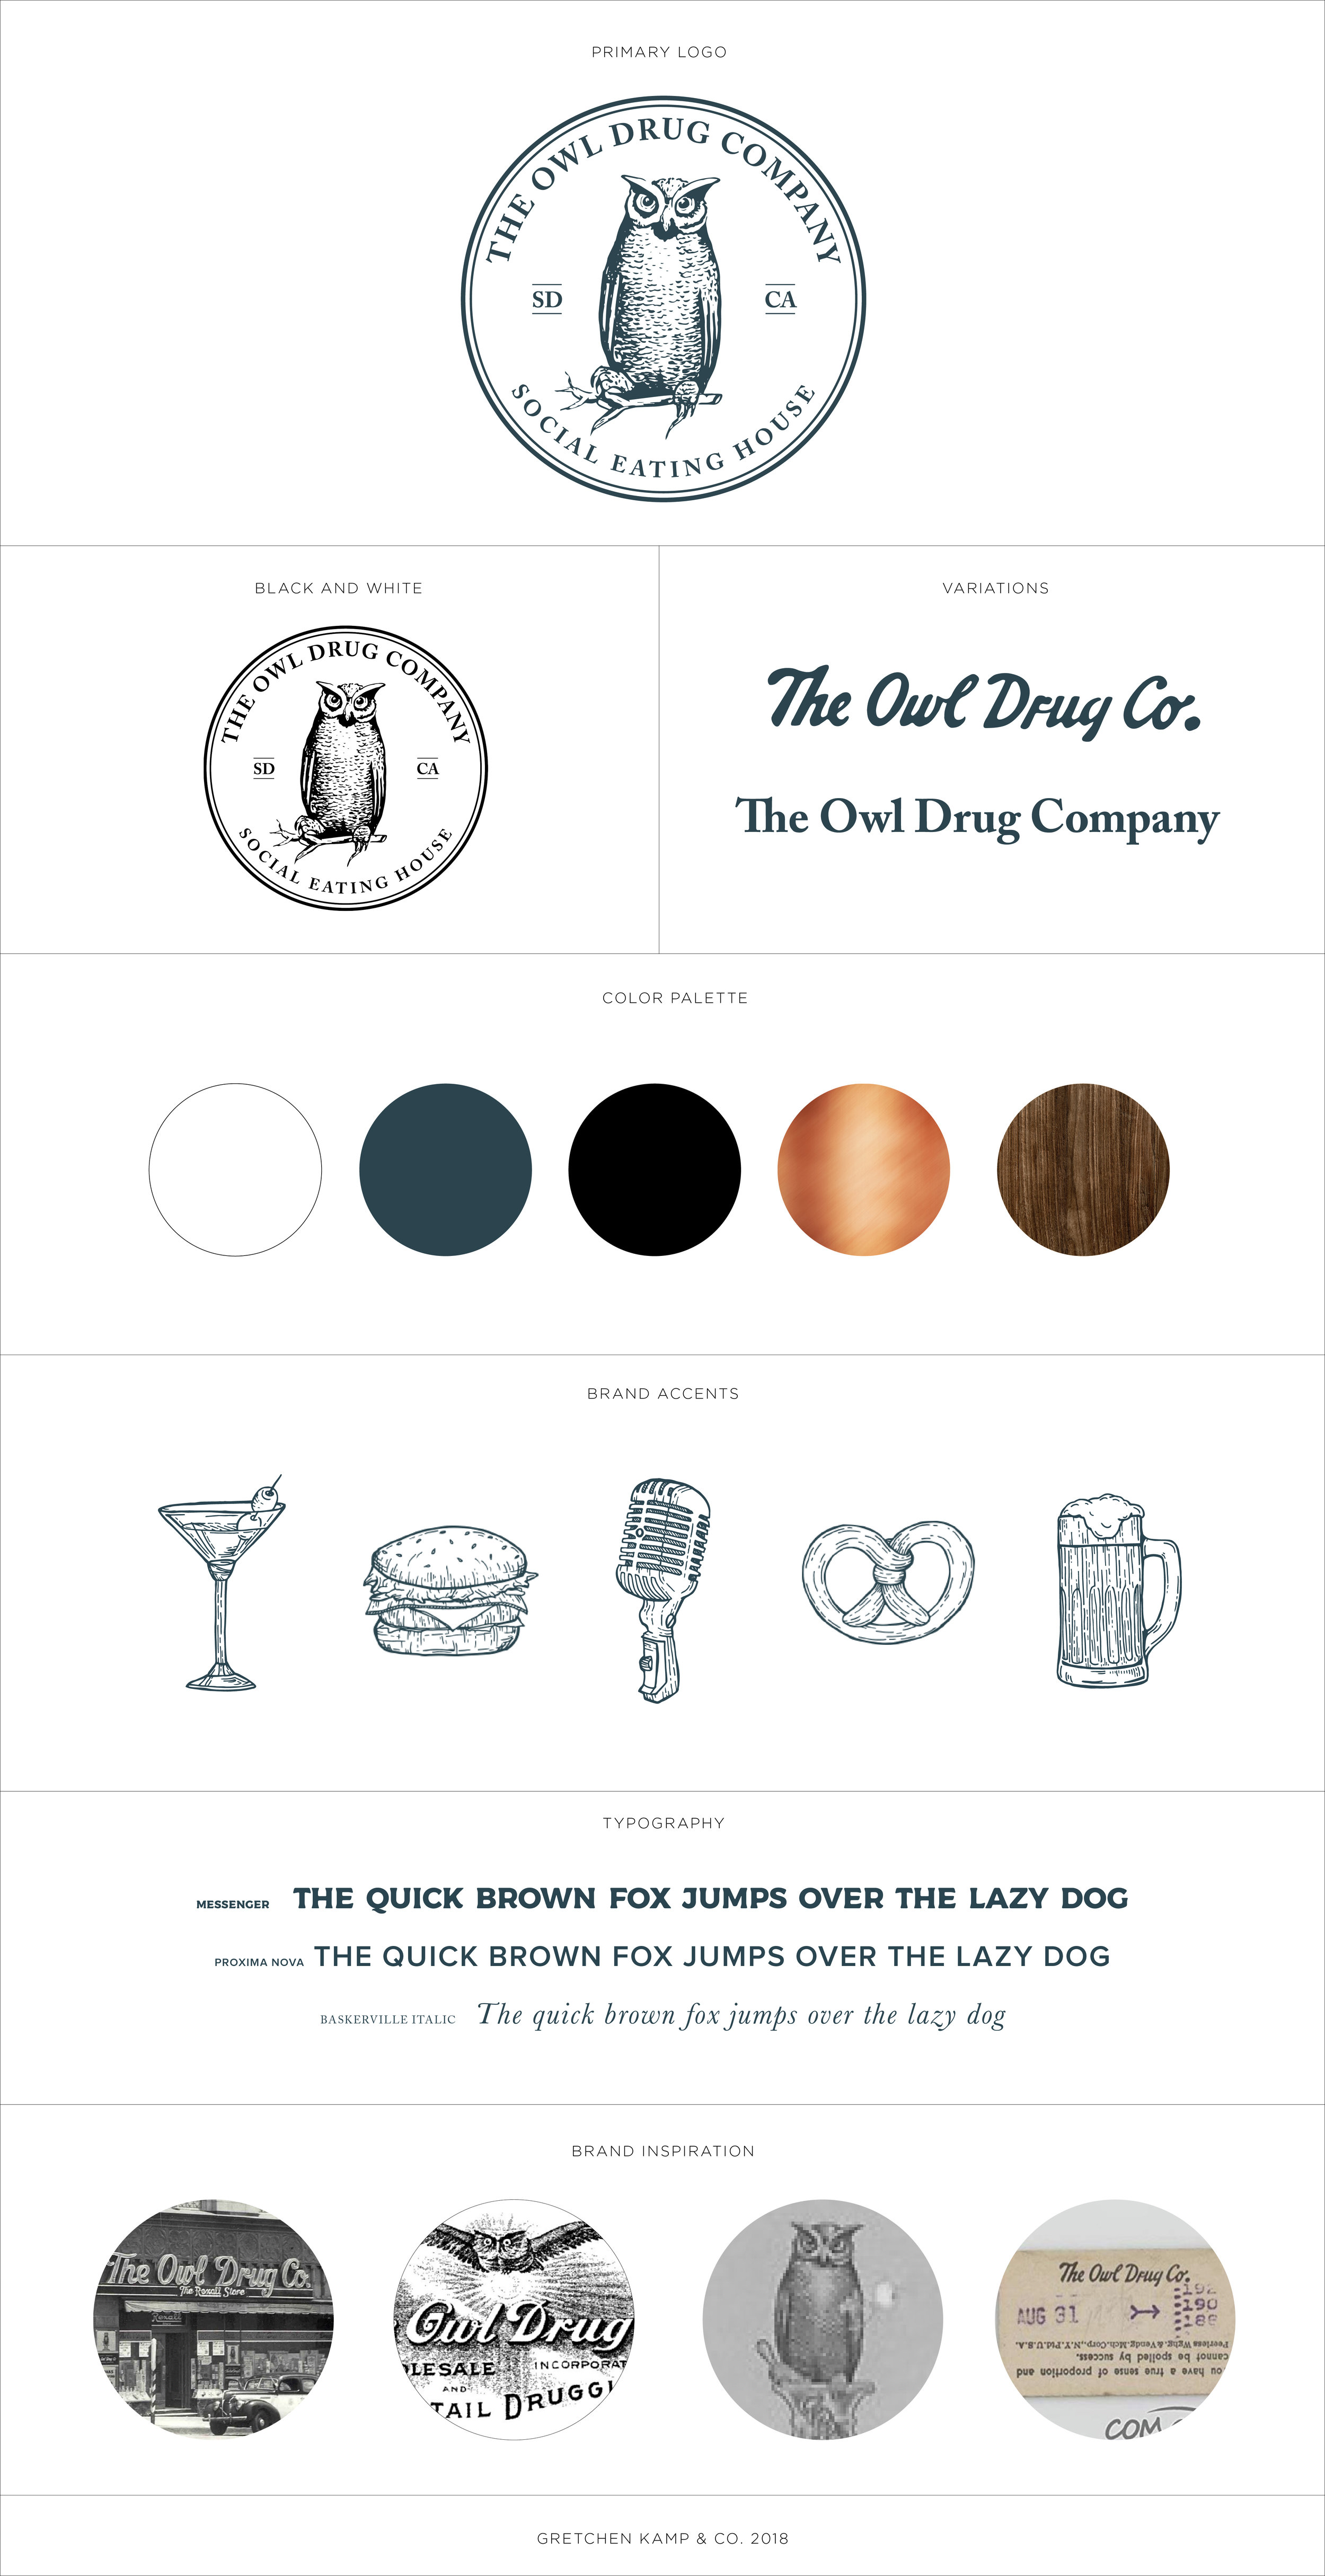 The Owl Drug Co. Social Eating House Brand Identity by Gretchen Kamp in San Diego, CA